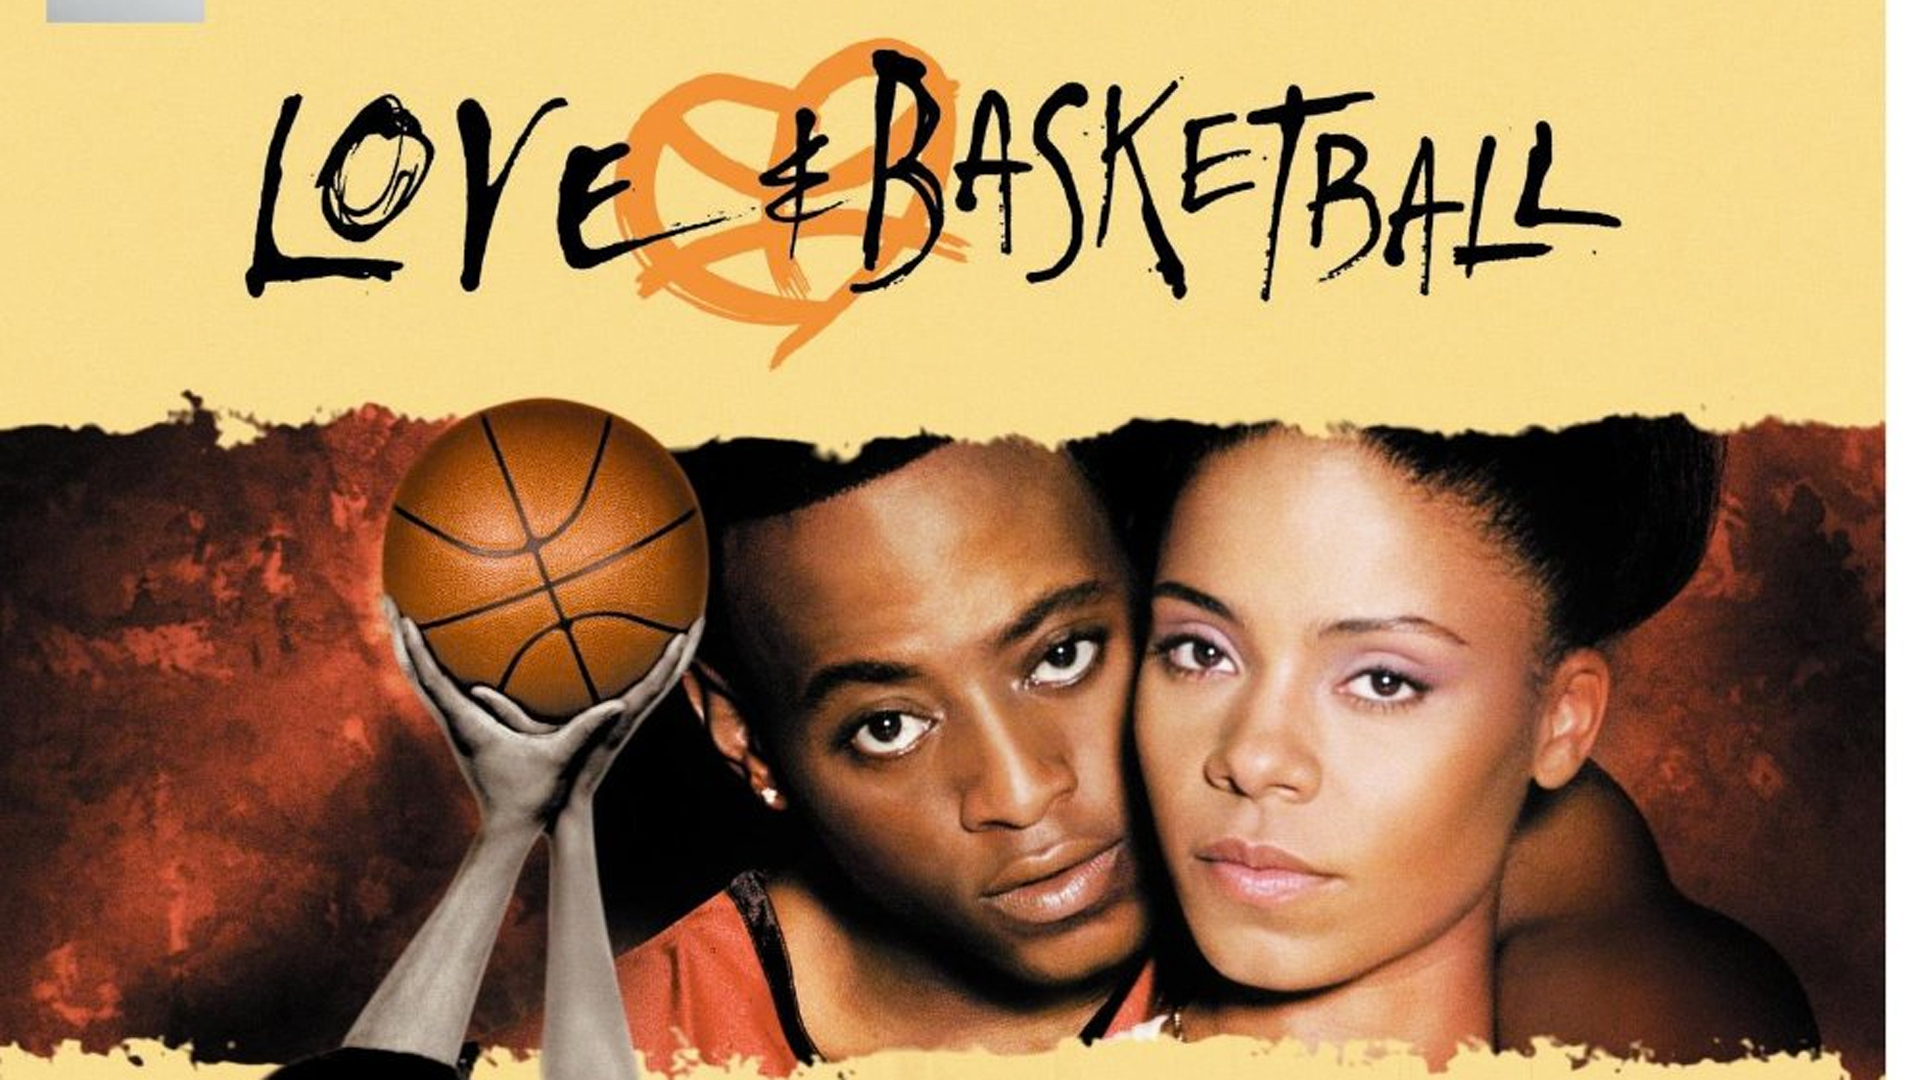 No There Won T Be A Love Basketball Sequel Sporting News